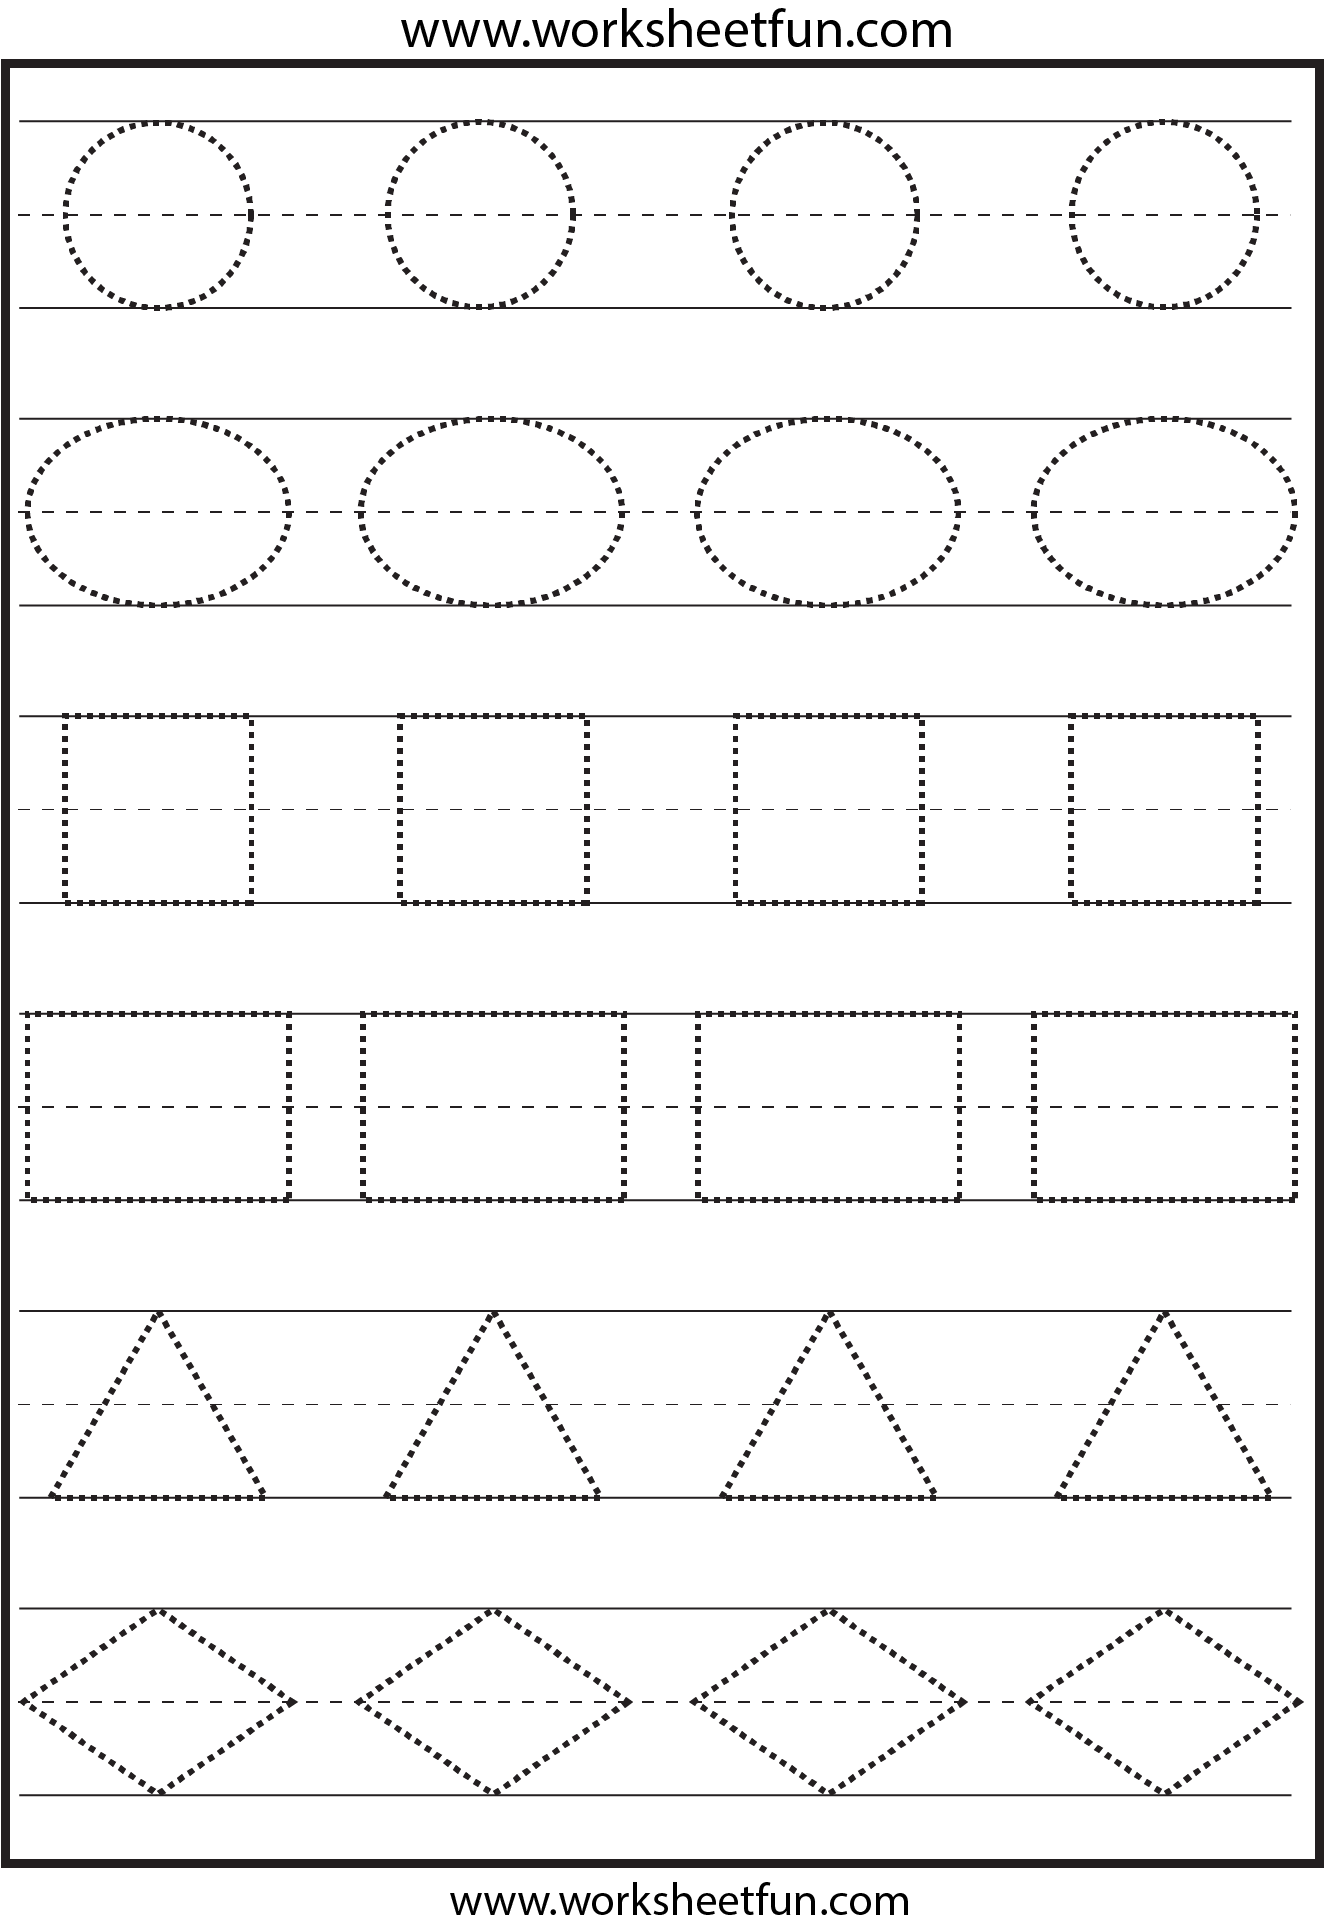 Worksheets Free Printable Shape Worksheets tracing shapes this is not the right image ones on page were